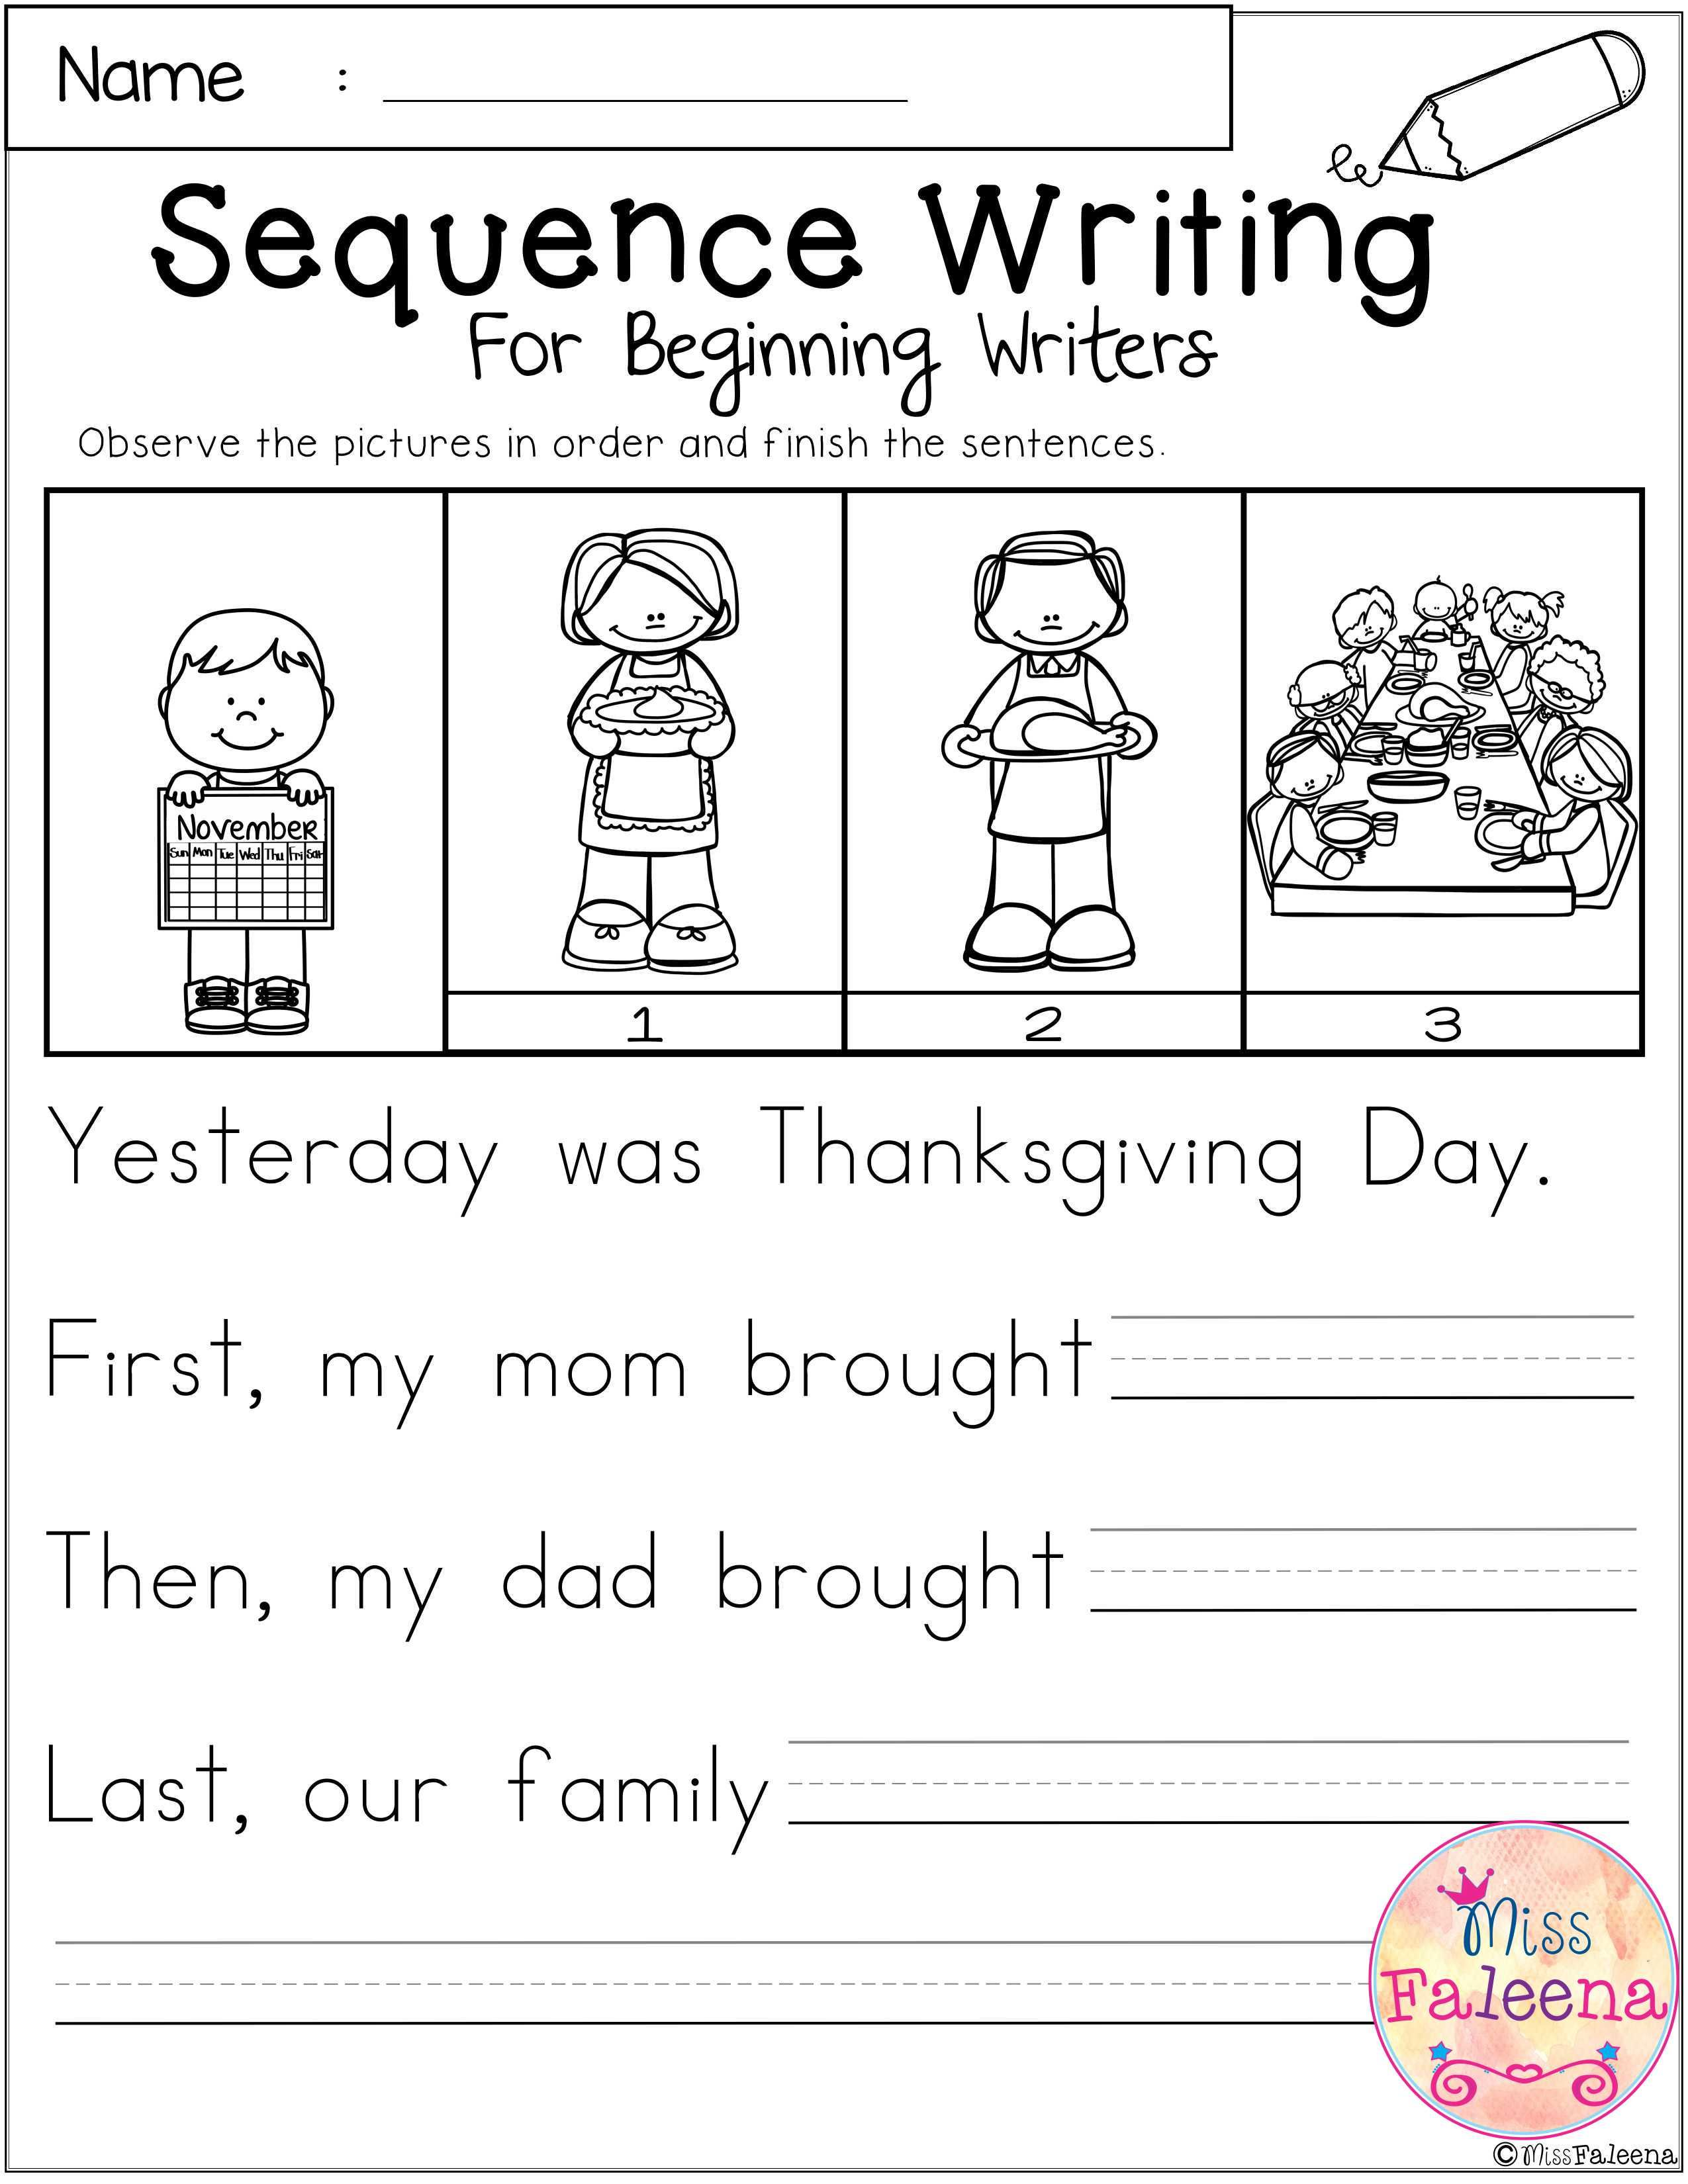 hight resolution of https://www.contohkumpulan.com/november-sequence-writing-for-beginning-writers-miss-faleena-s-store-first-grade-worksheets/